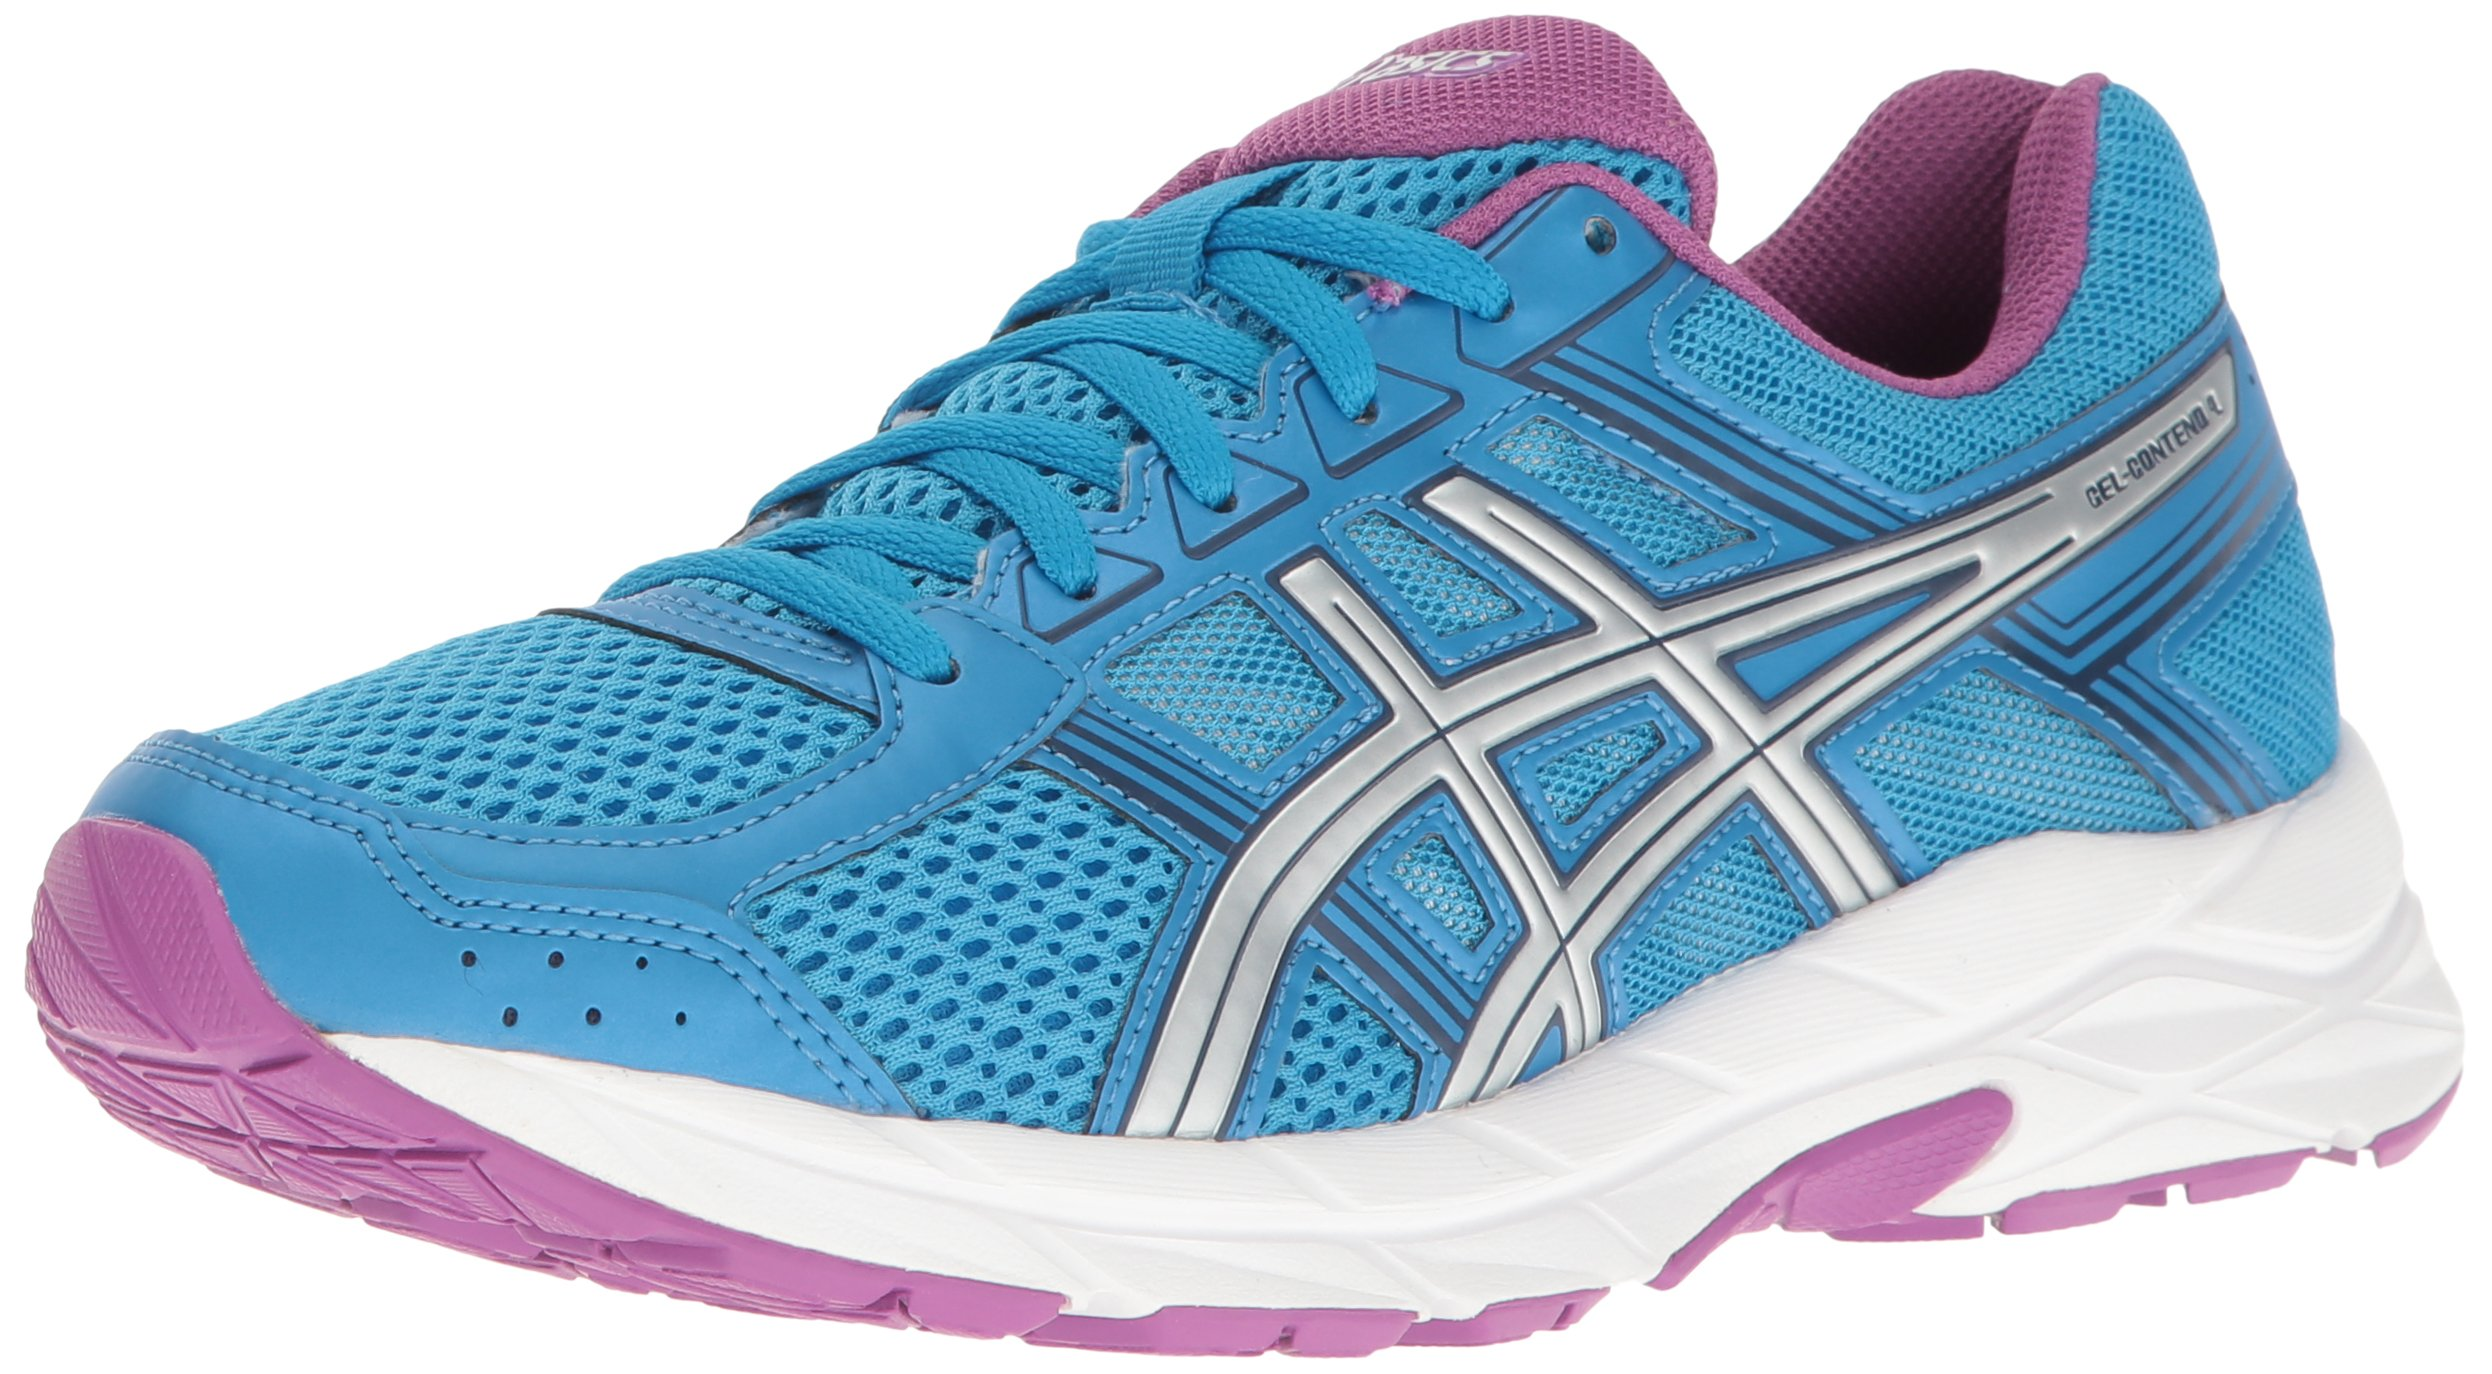 ASICS Women's Gel-Contend 4 Running Shoe, Diva Blue/Silver/Orchid, 5 M US